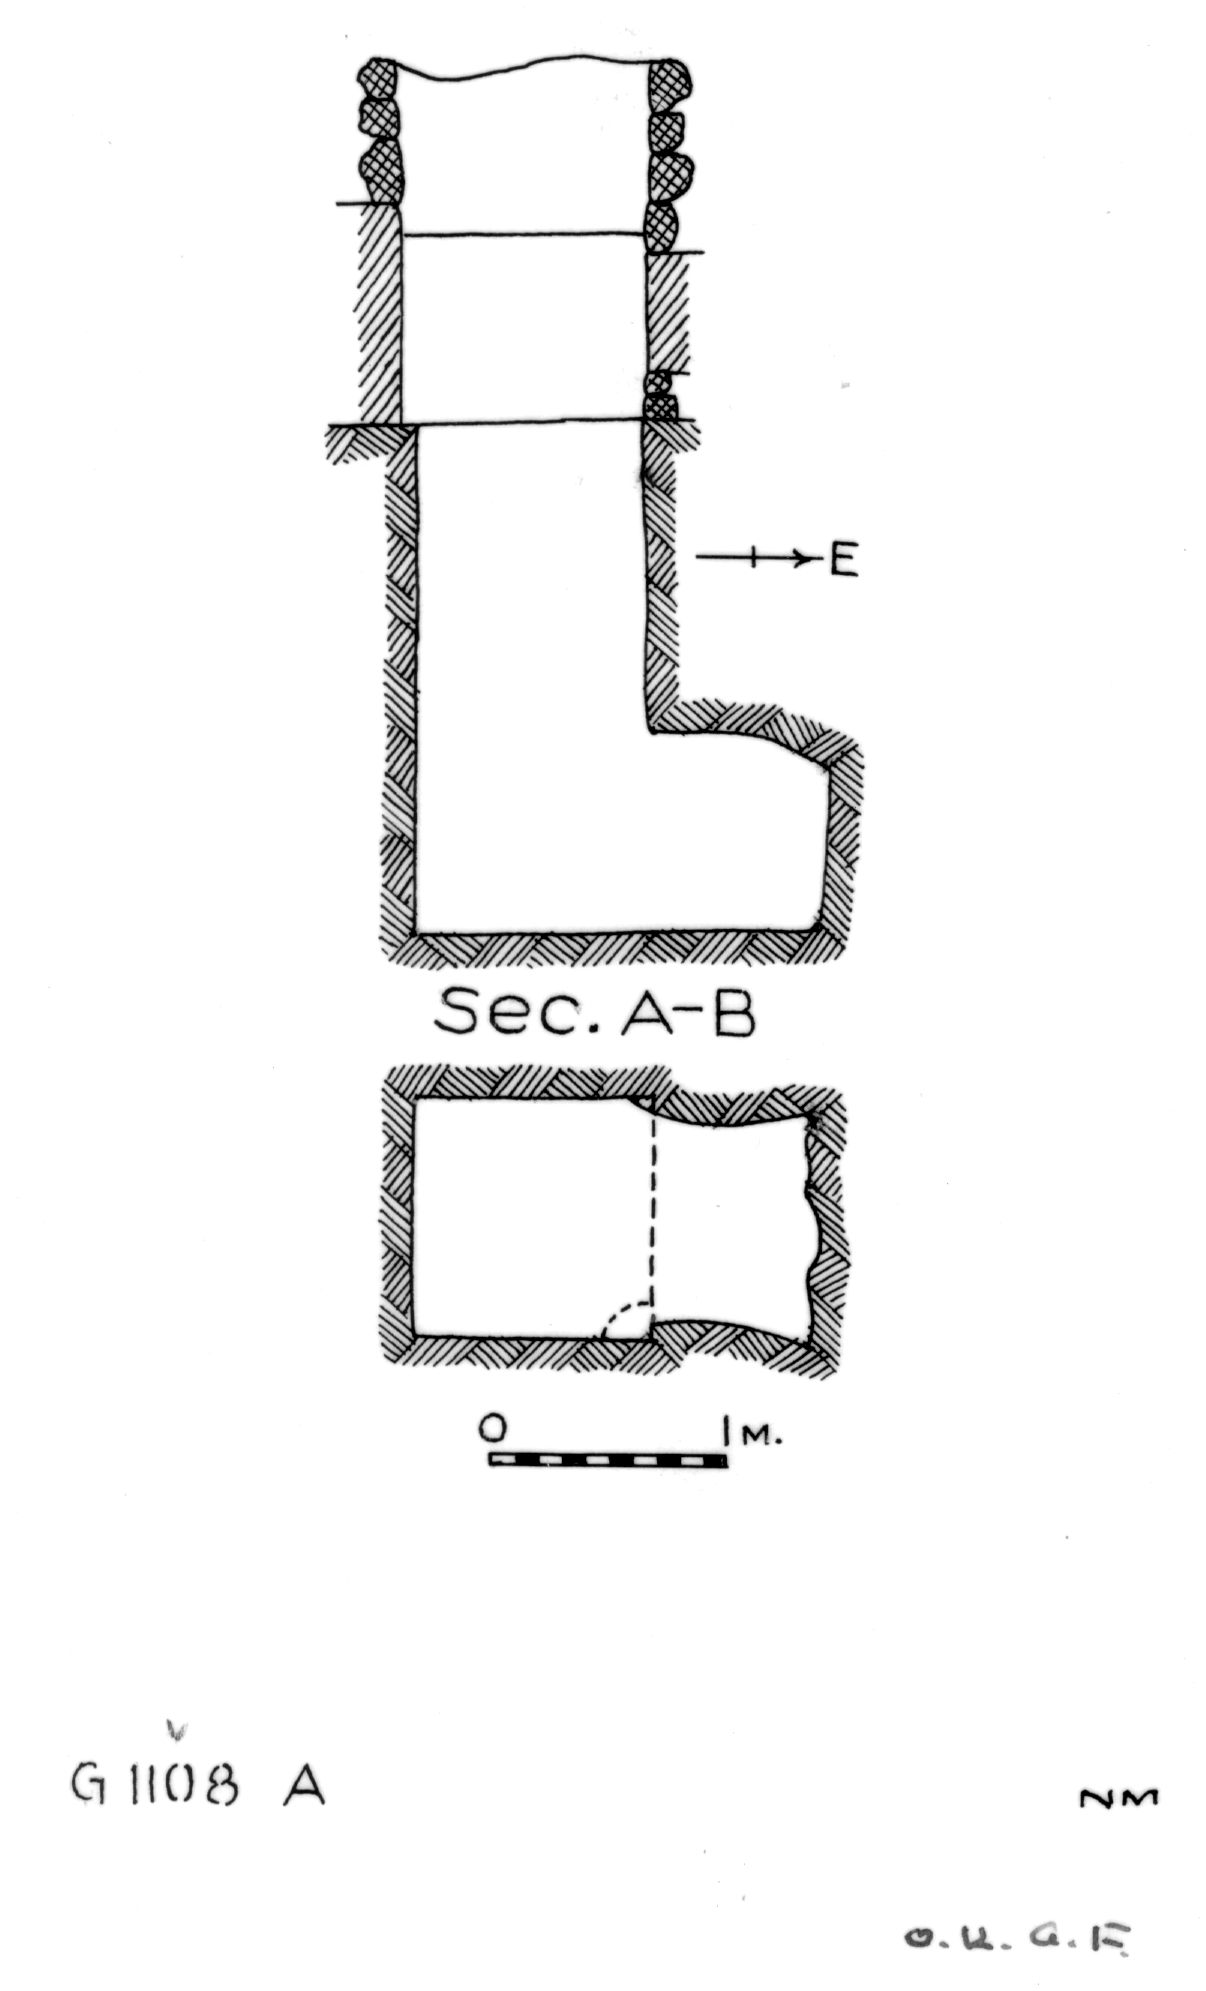 Maps and plans: G 1108, Shaft A